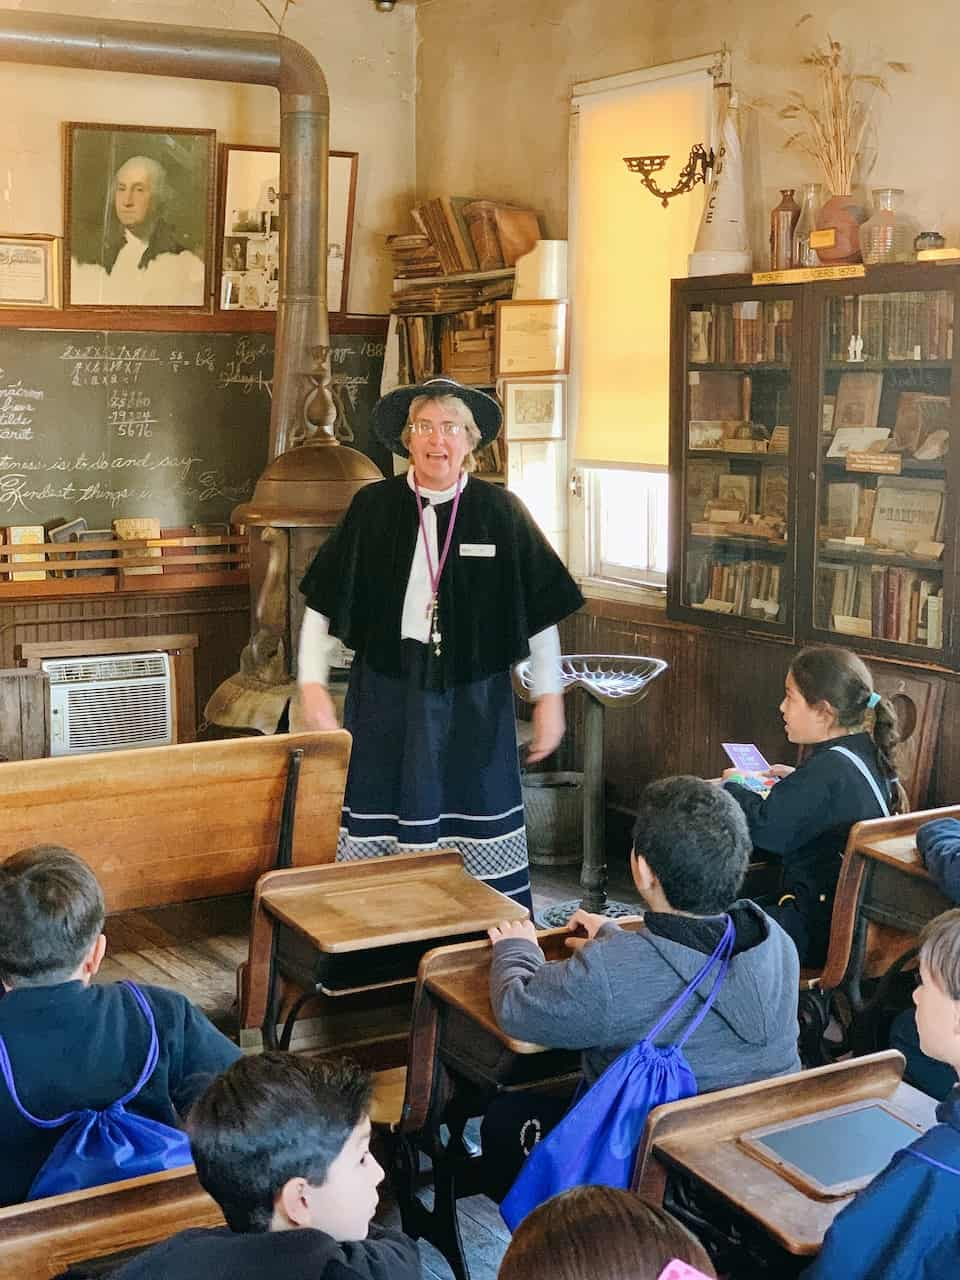 Lady explaining California history in a one room school house in Buena Park